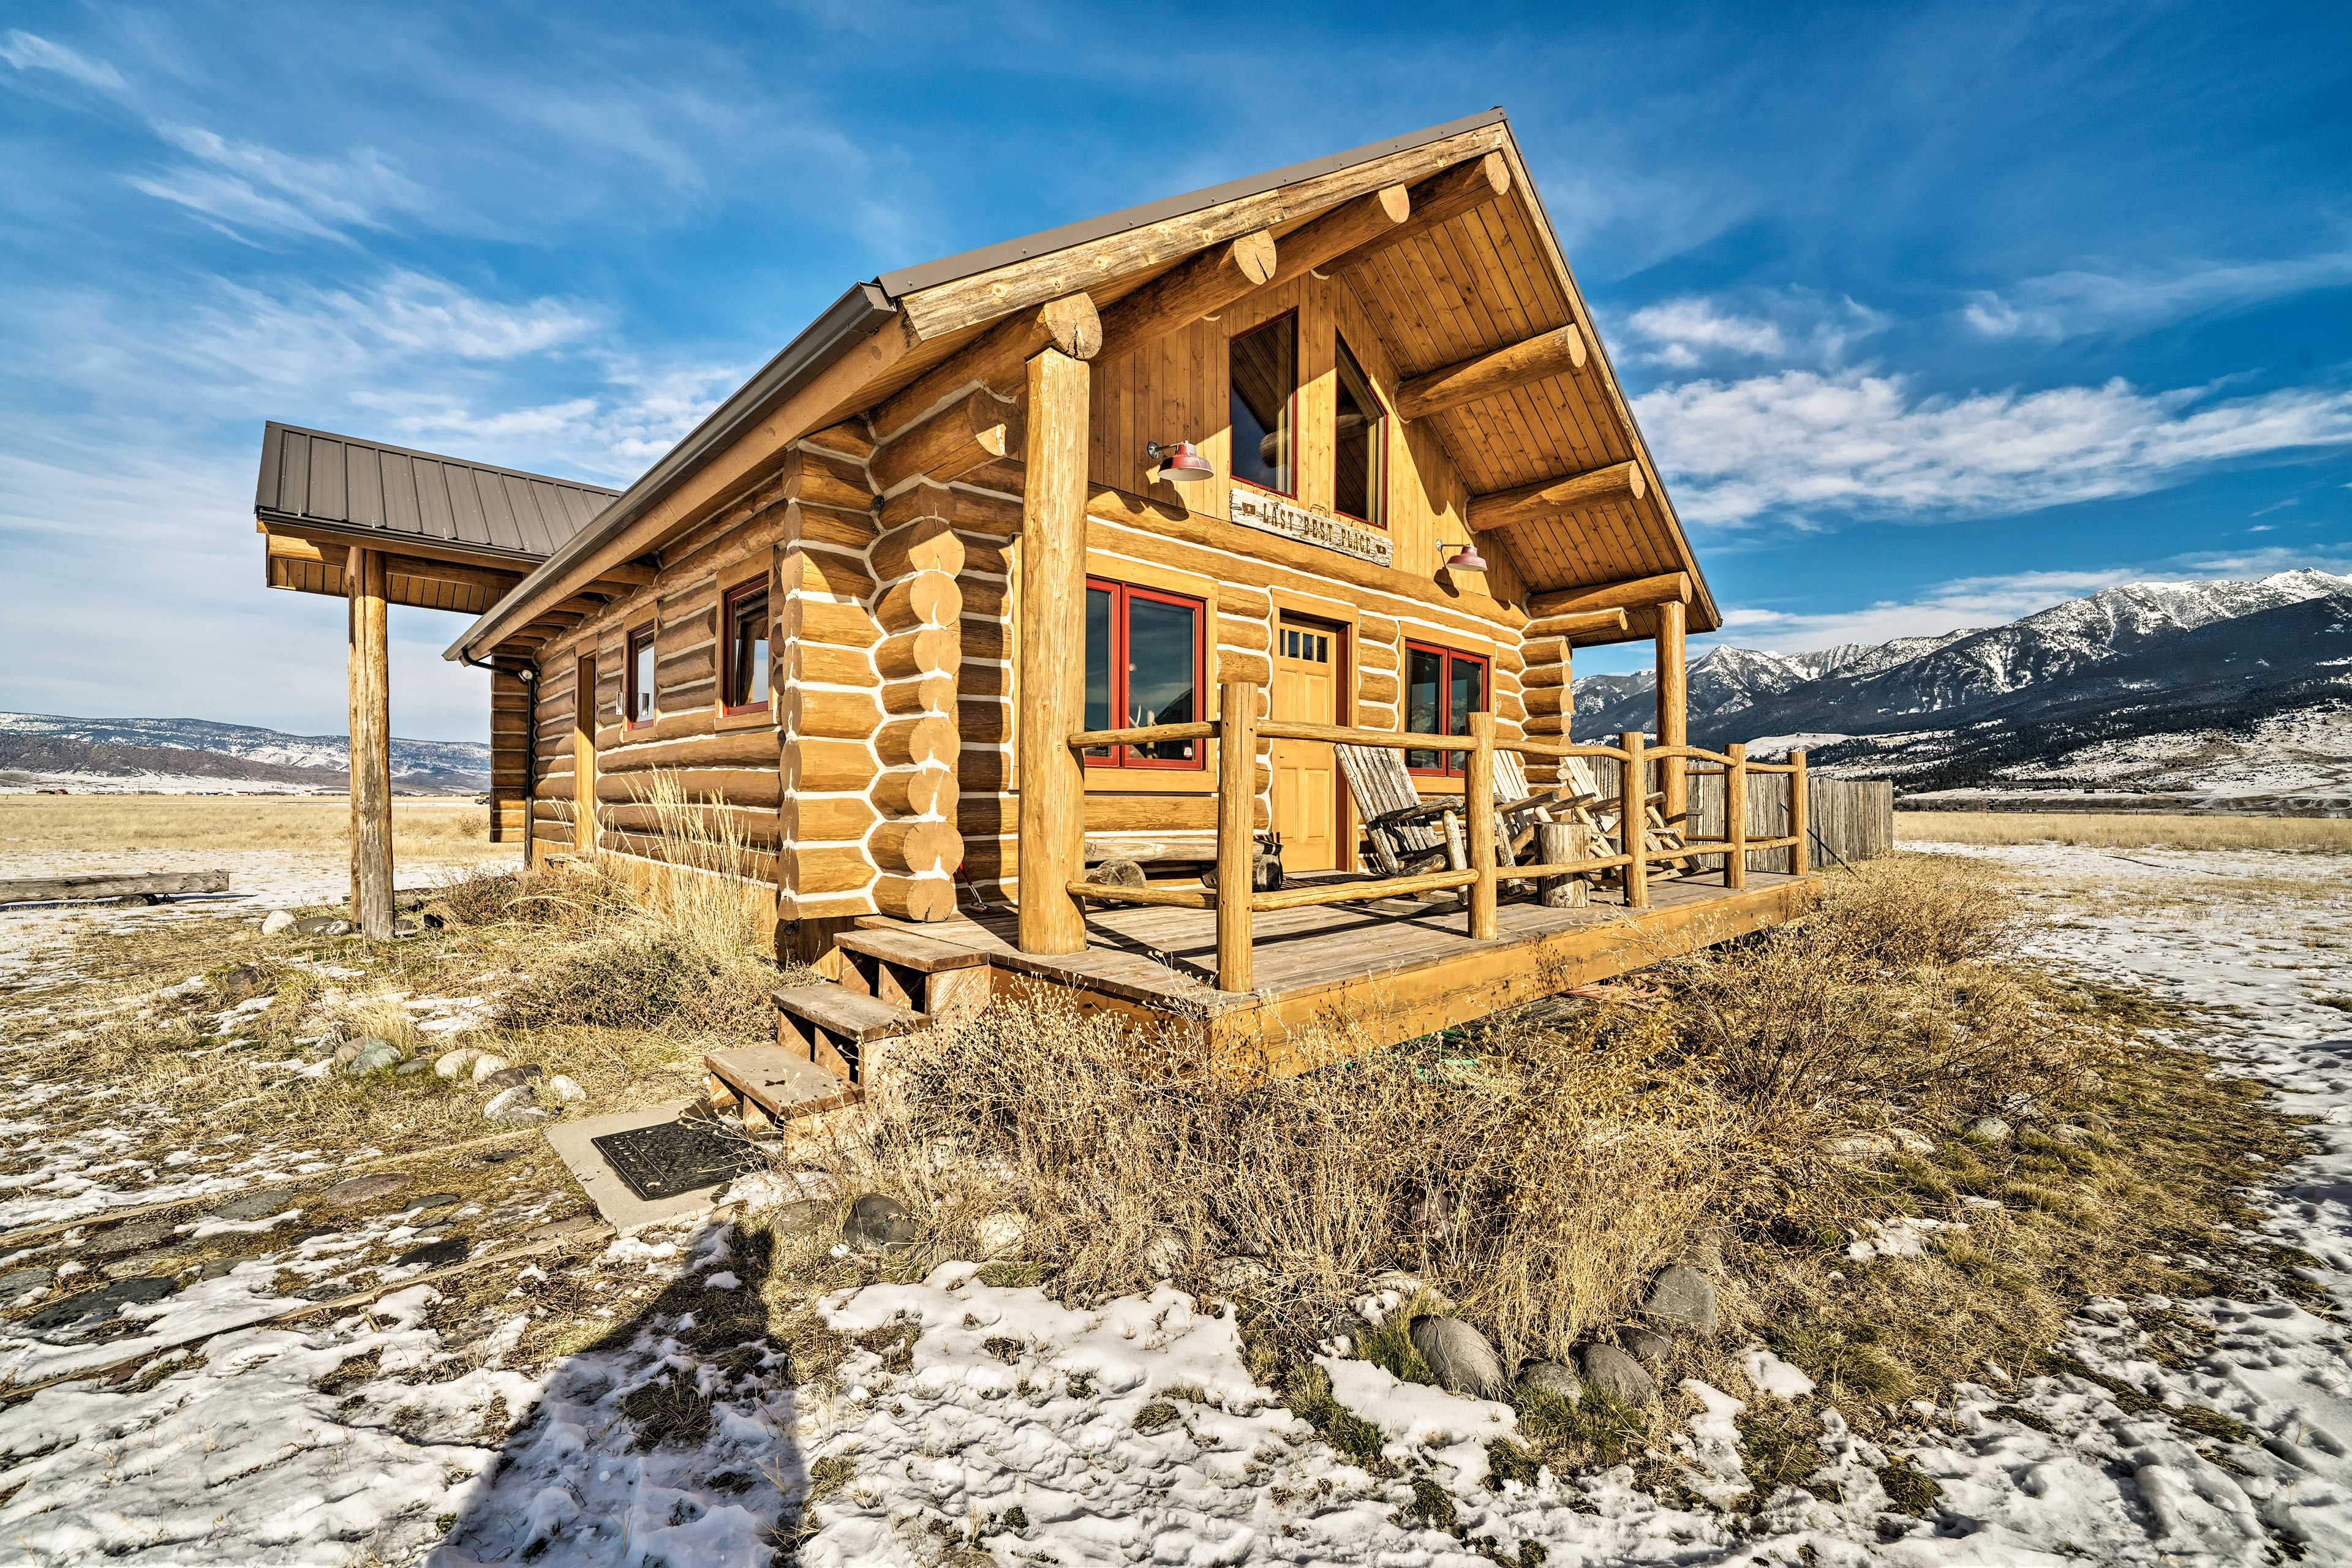 This cabin is just 38 miles from Yellowstone National Park!